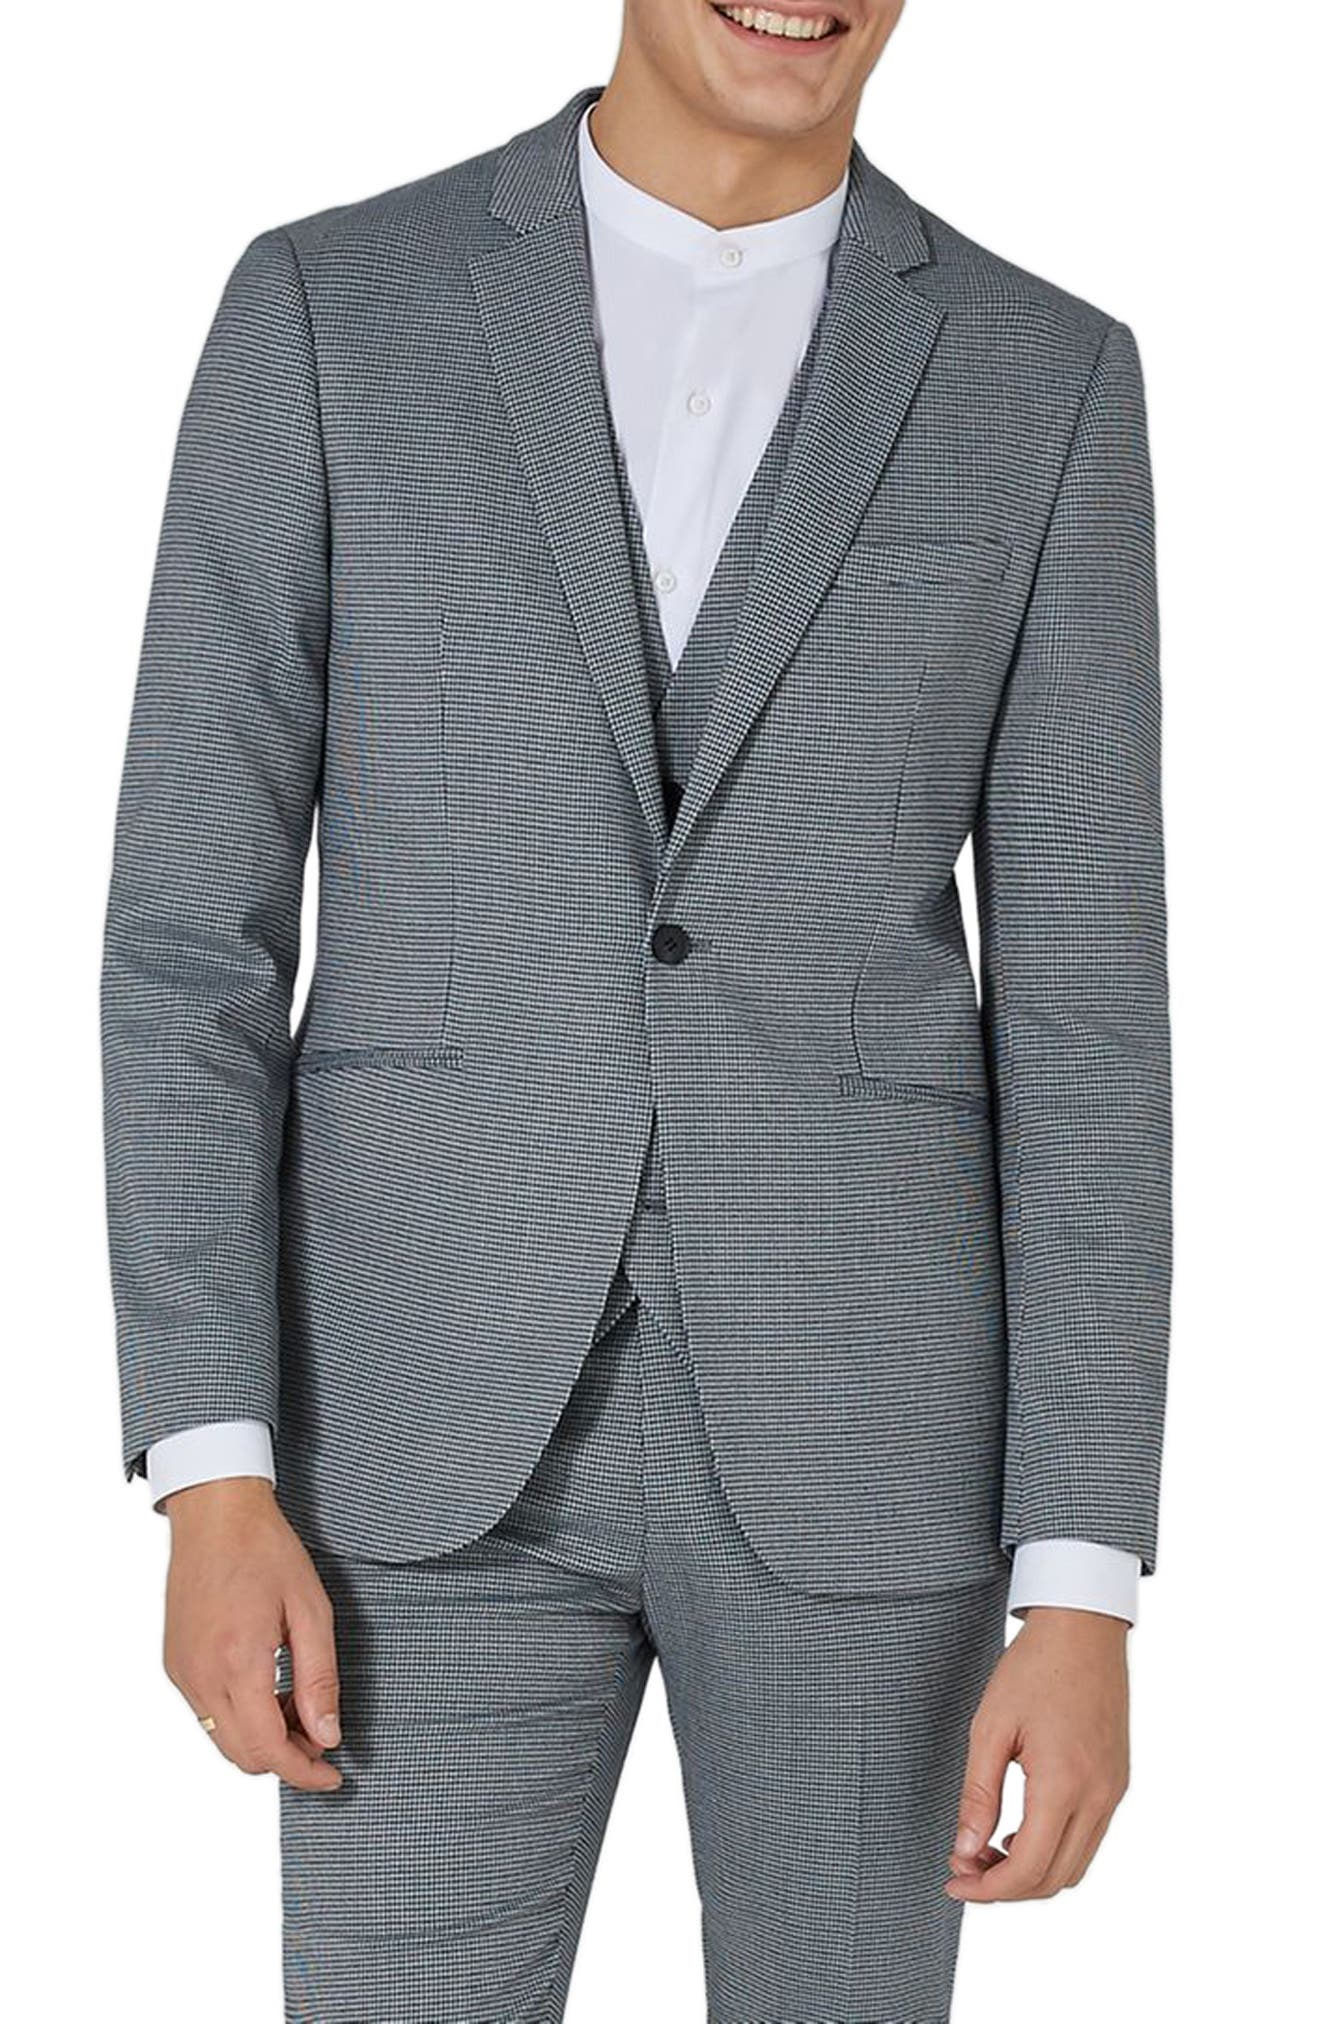 Main Image - Topman Skinny Fit Houndstooth Suit Jacket